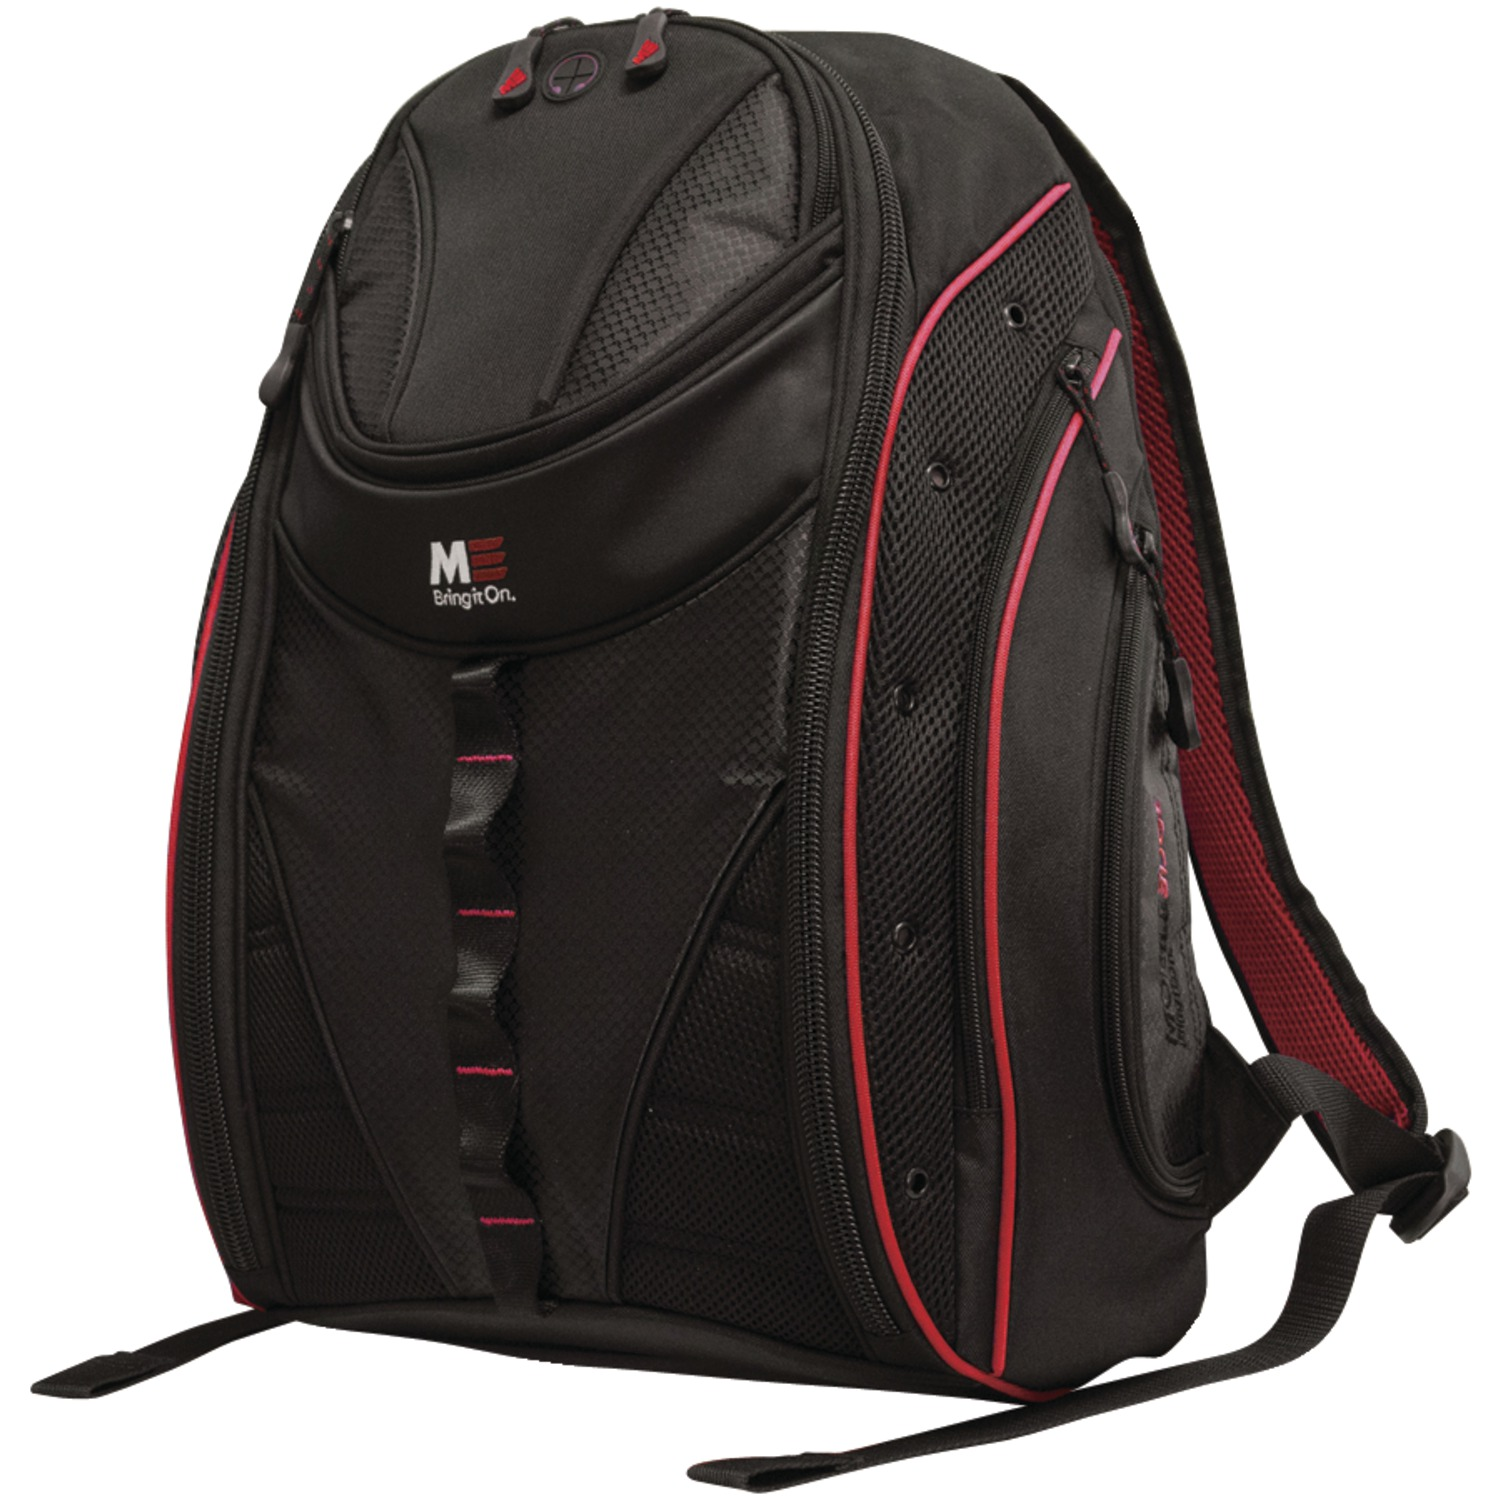 Wholesale Backpack now available at Wholesale Central - Items 81 - 120 447924bab607c